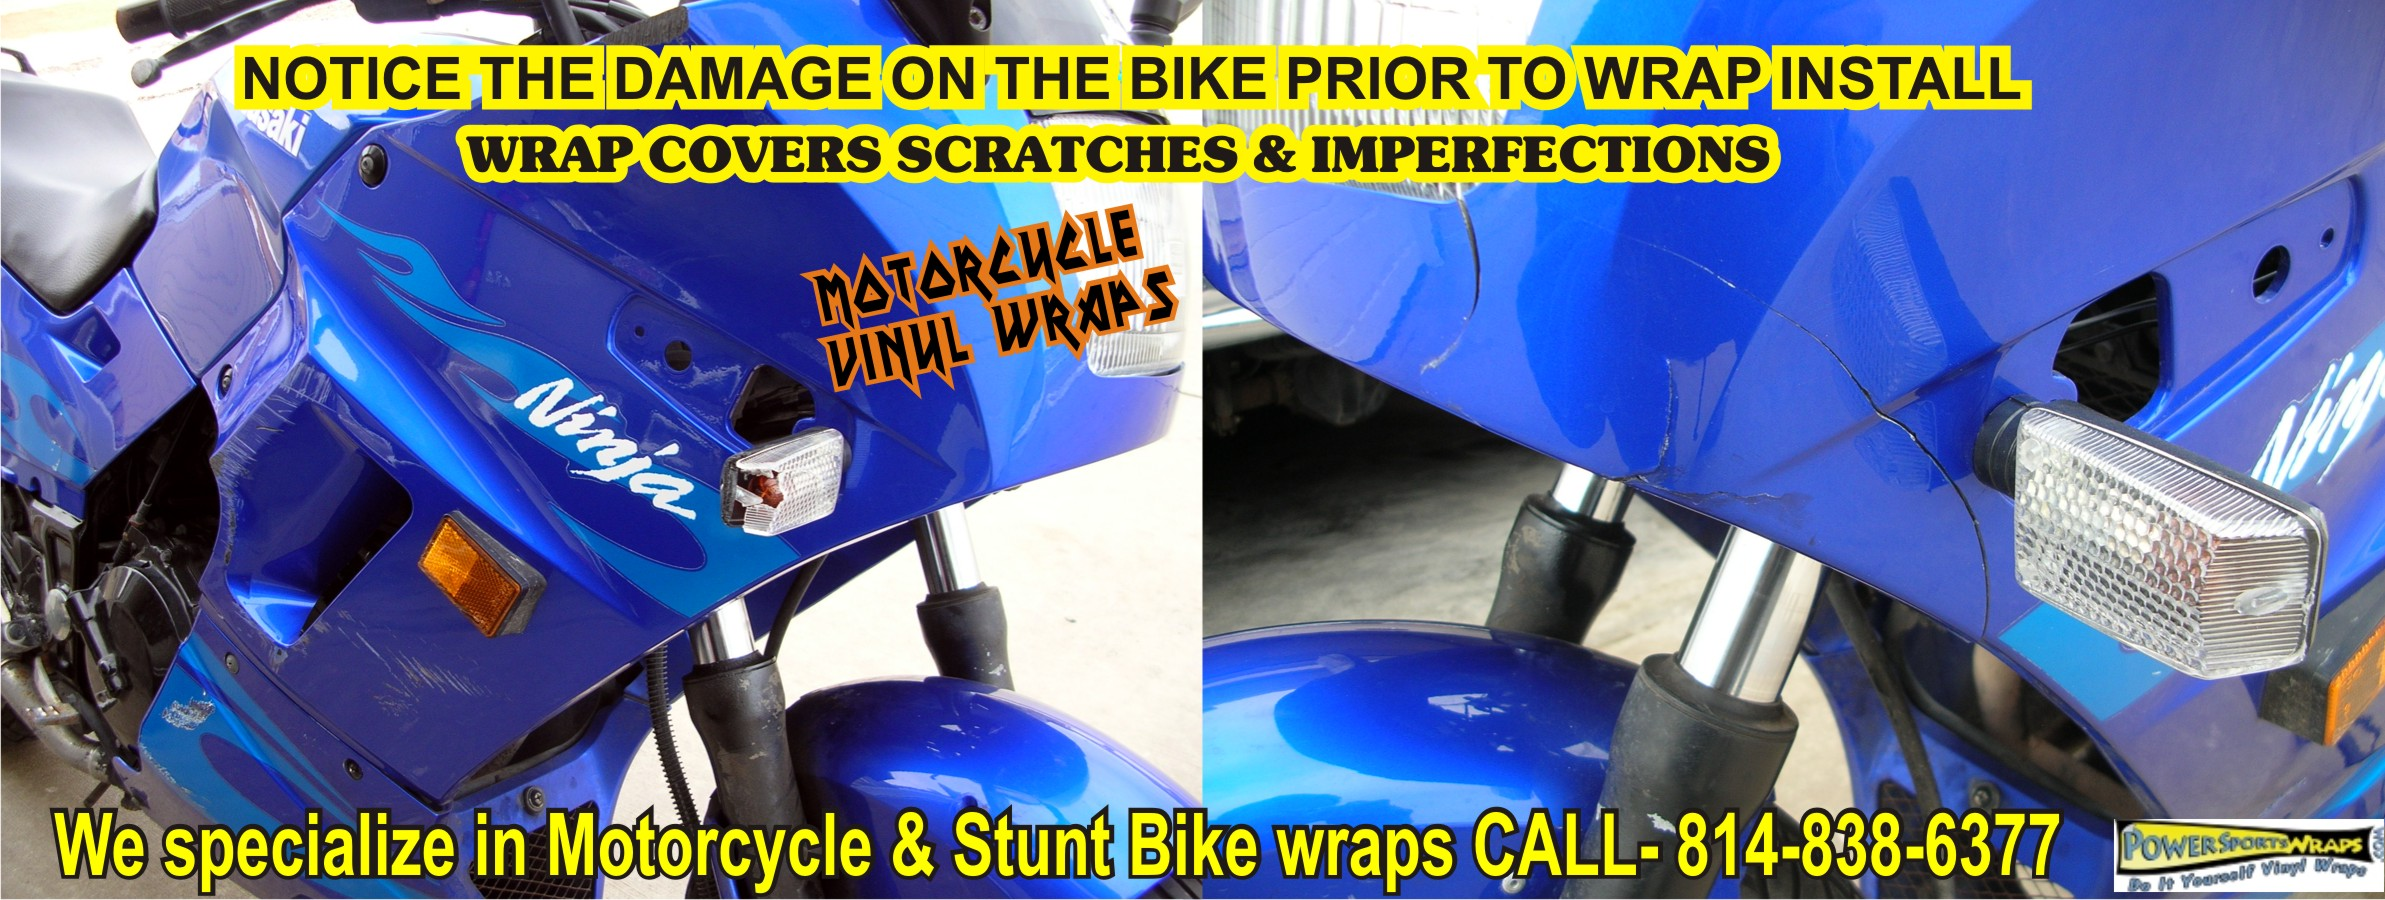 New Wrap Projects Archives Page Of Powersportswrapscom - Vinyl bike wrapmotorcycle wrap archives powersportswrapscom